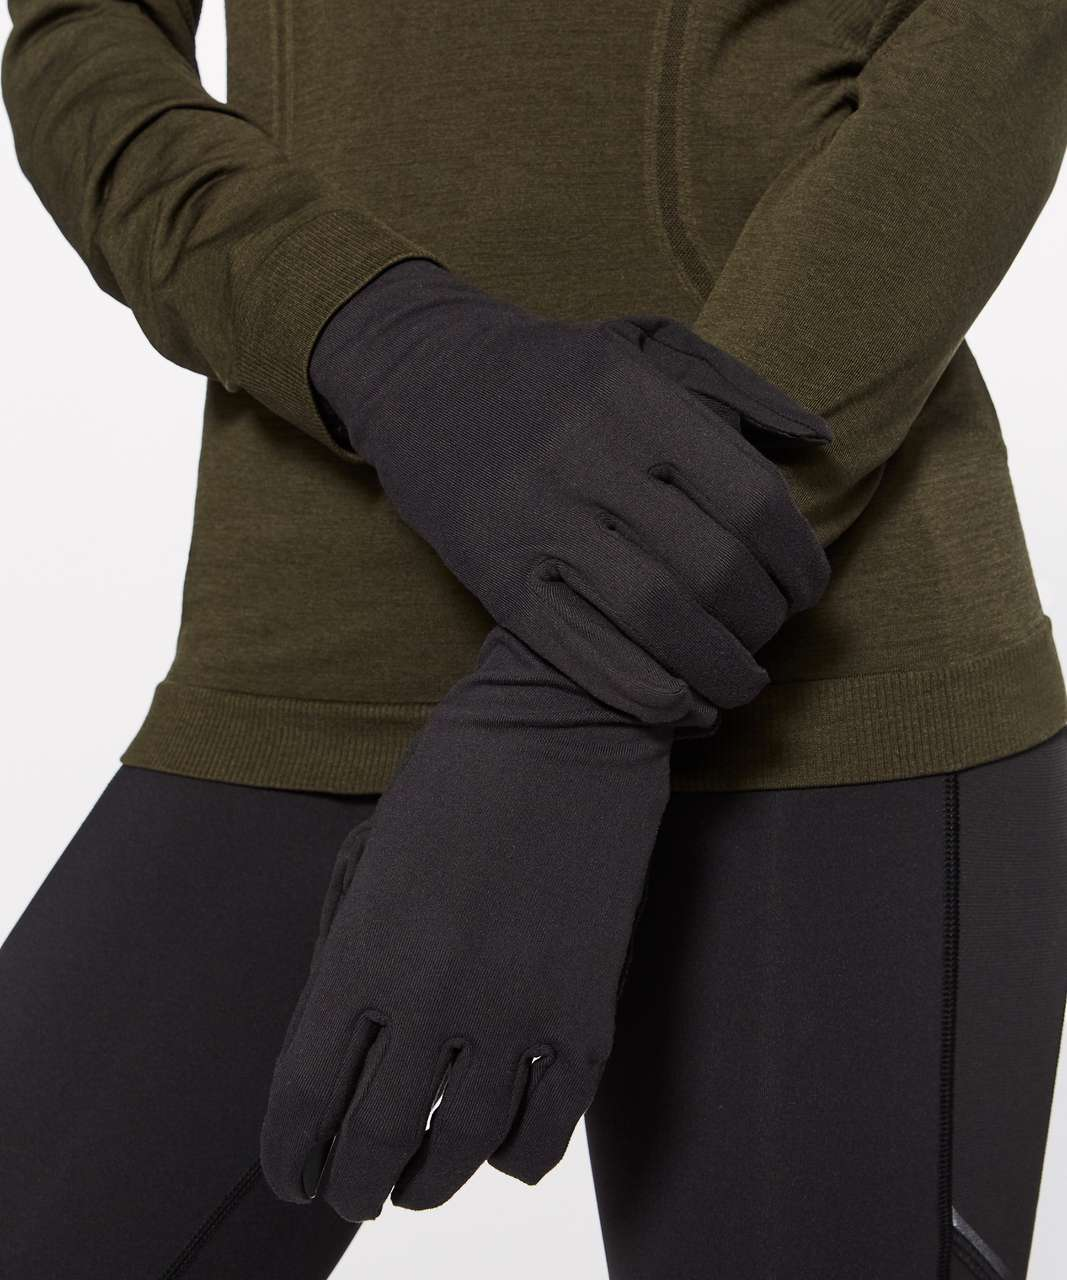 Lululemon Run It Out Kit Gloves + Toque - Black